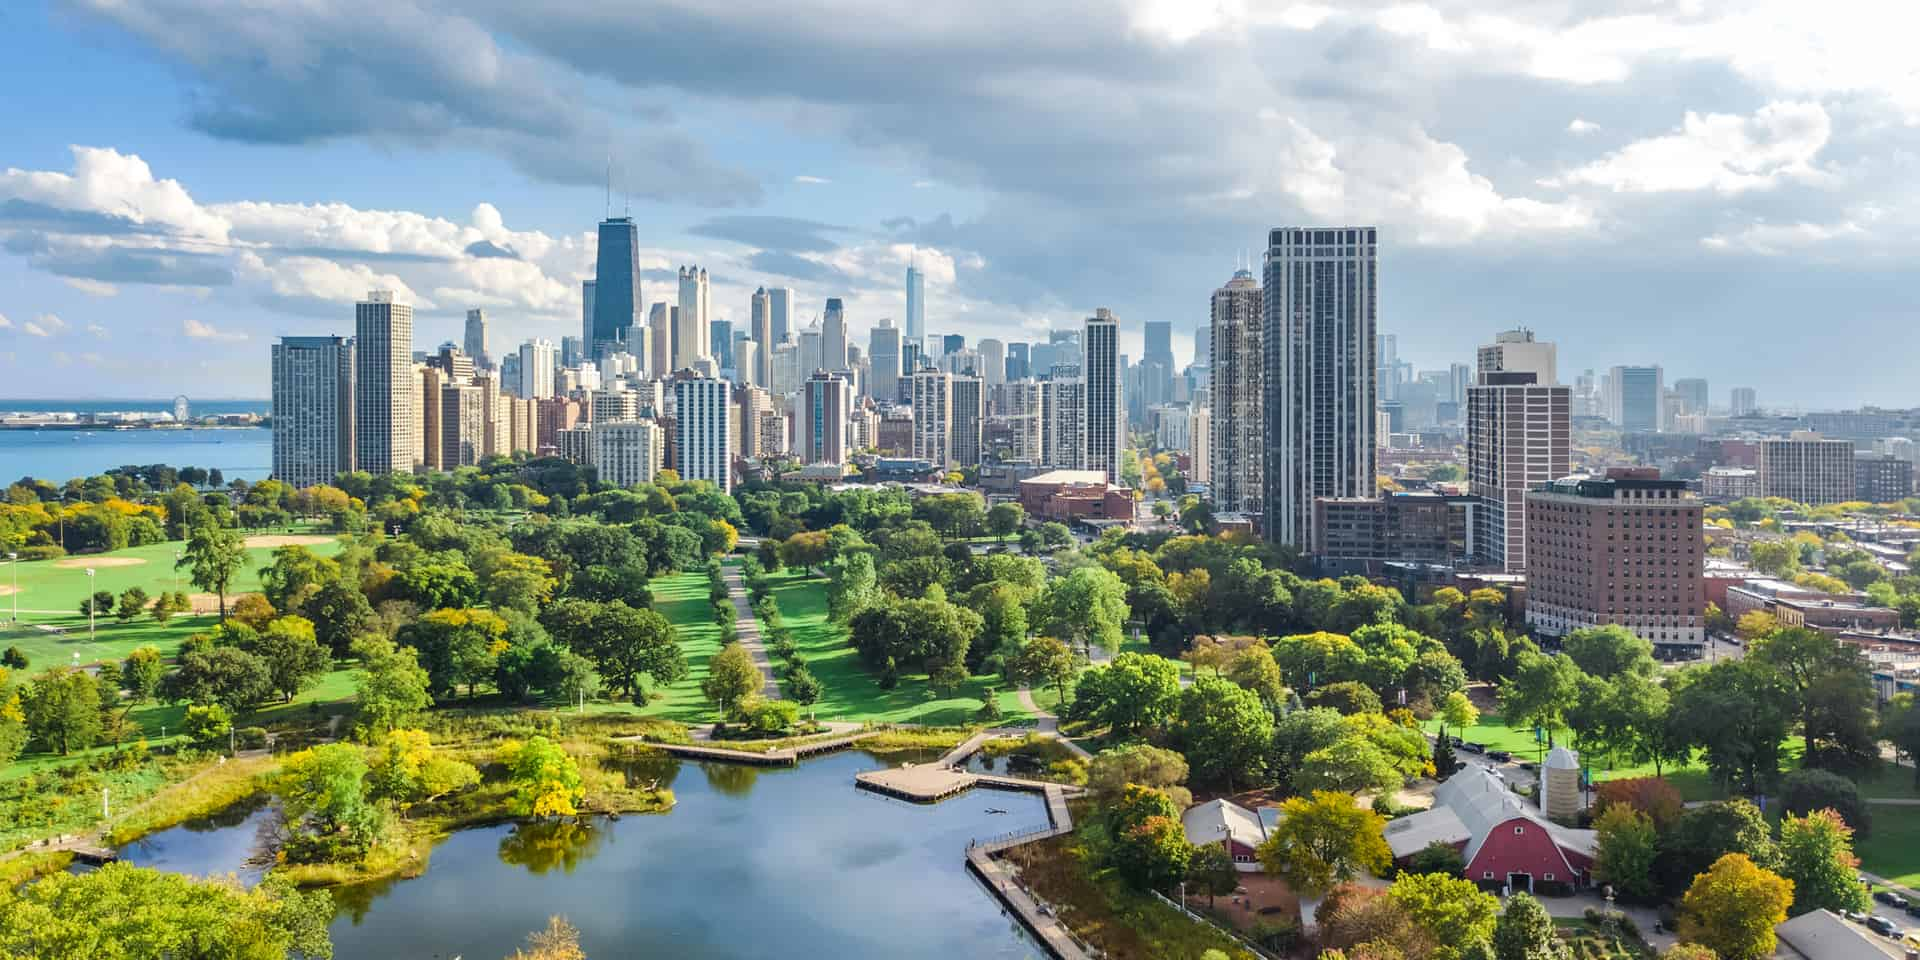 View of the Chicago skyline.